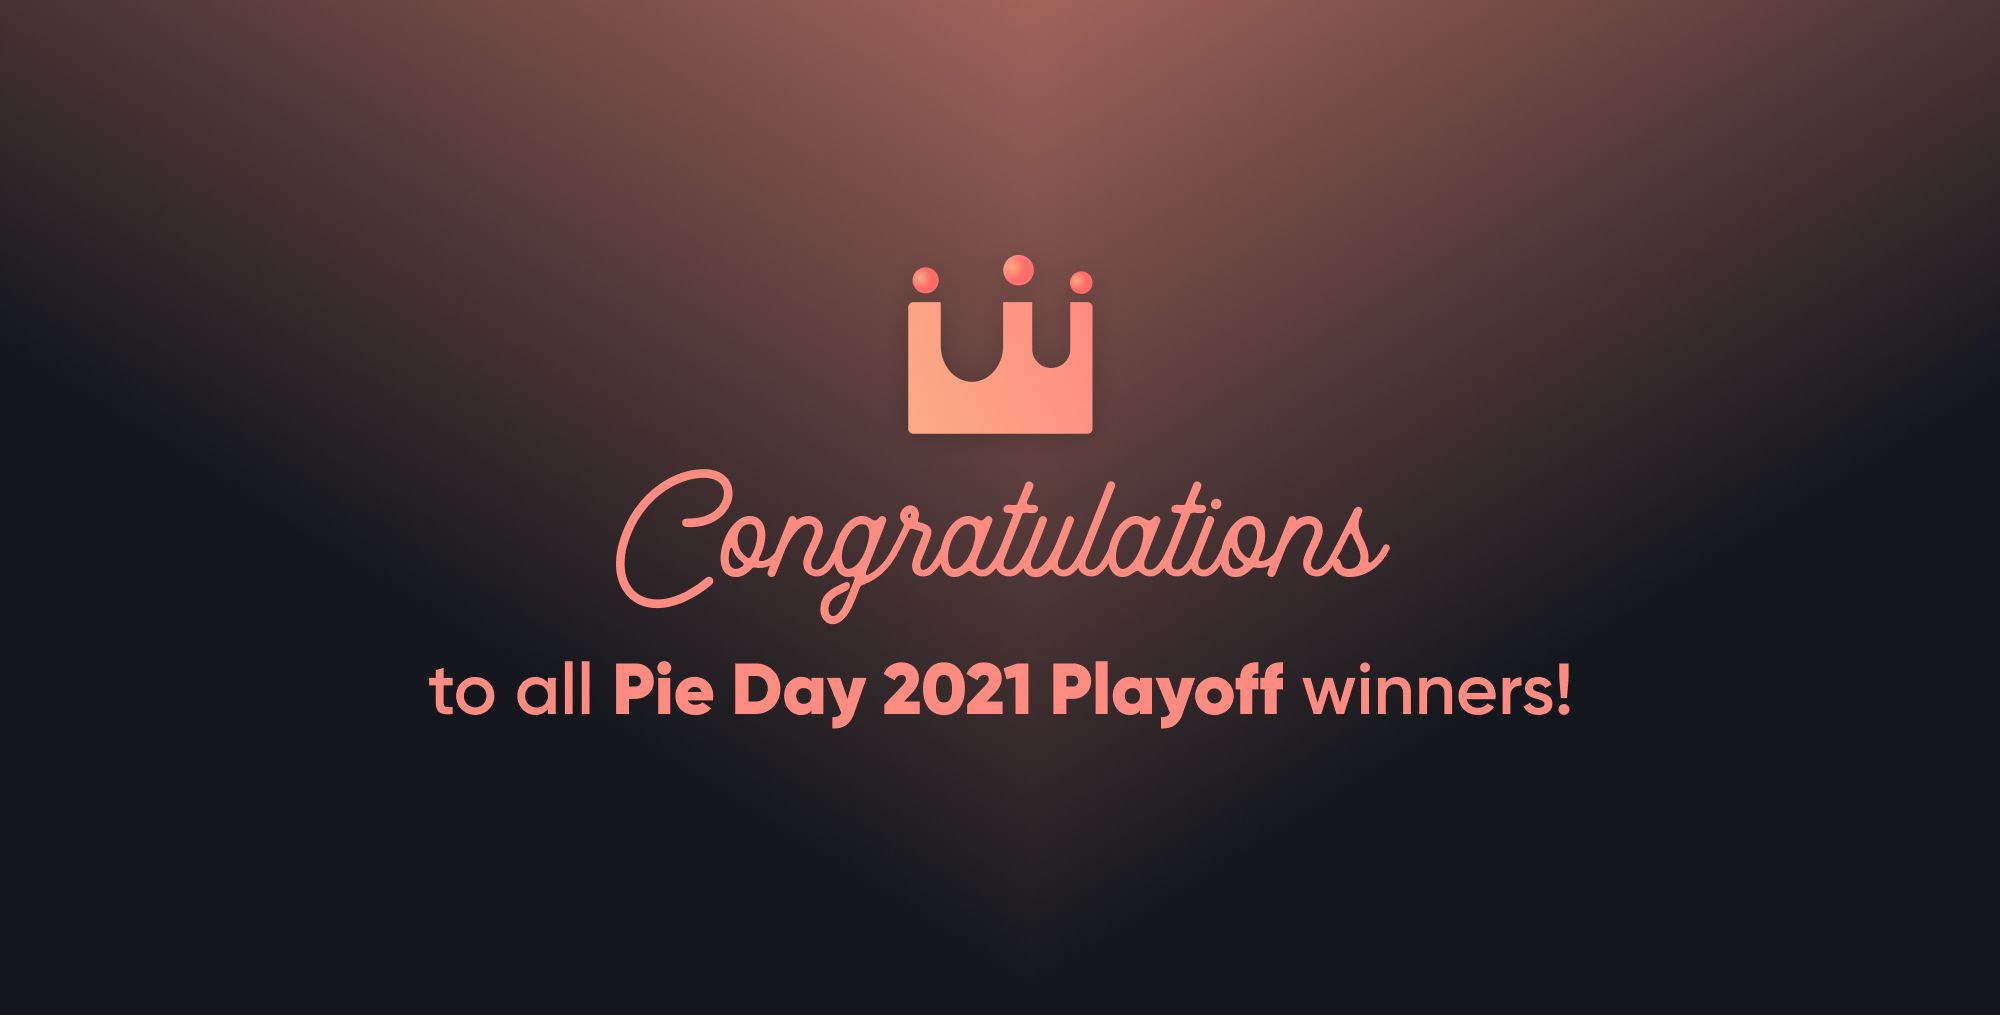 Pie Day 2021 Playoff winners thumbnail